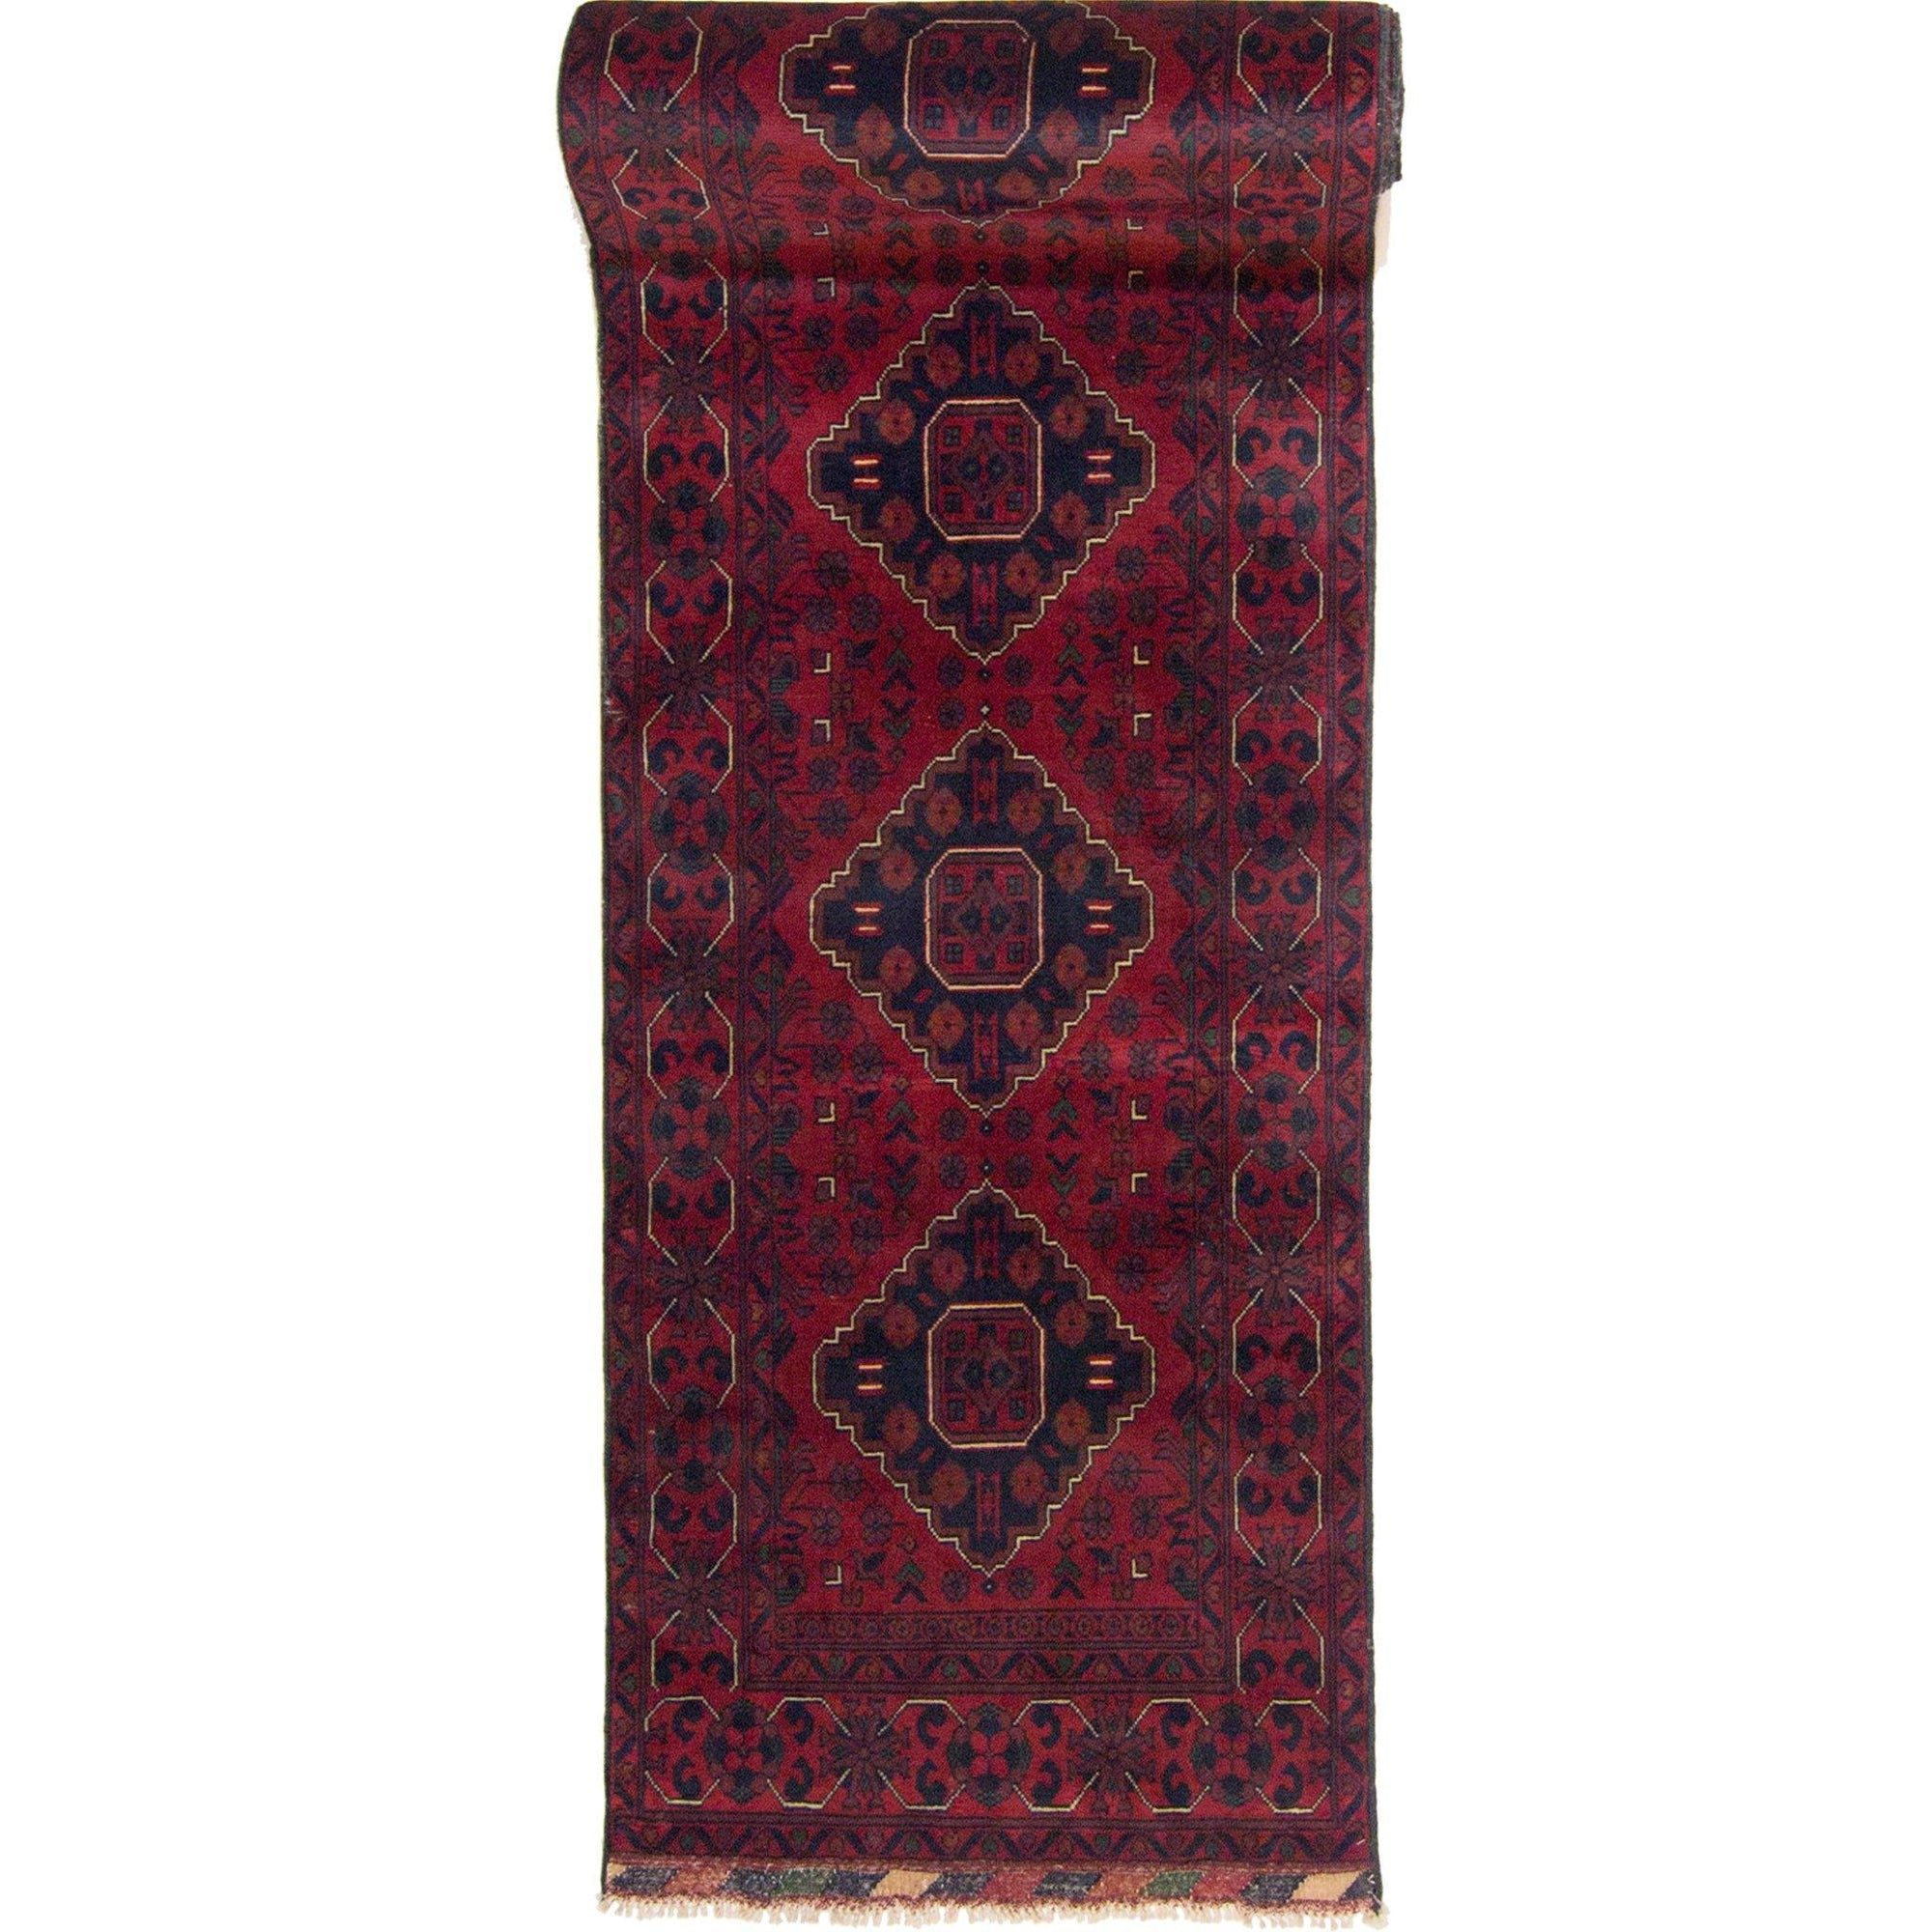 Hand-knotted 100% Wool Afghan Khal Mohammadi Runner 78cm x 573cm Persian-Rug | House-of-Haghi | NewMarket | Auckland | NZ | Handmade Persian Rugs | Hand Knotted Persian Rugs